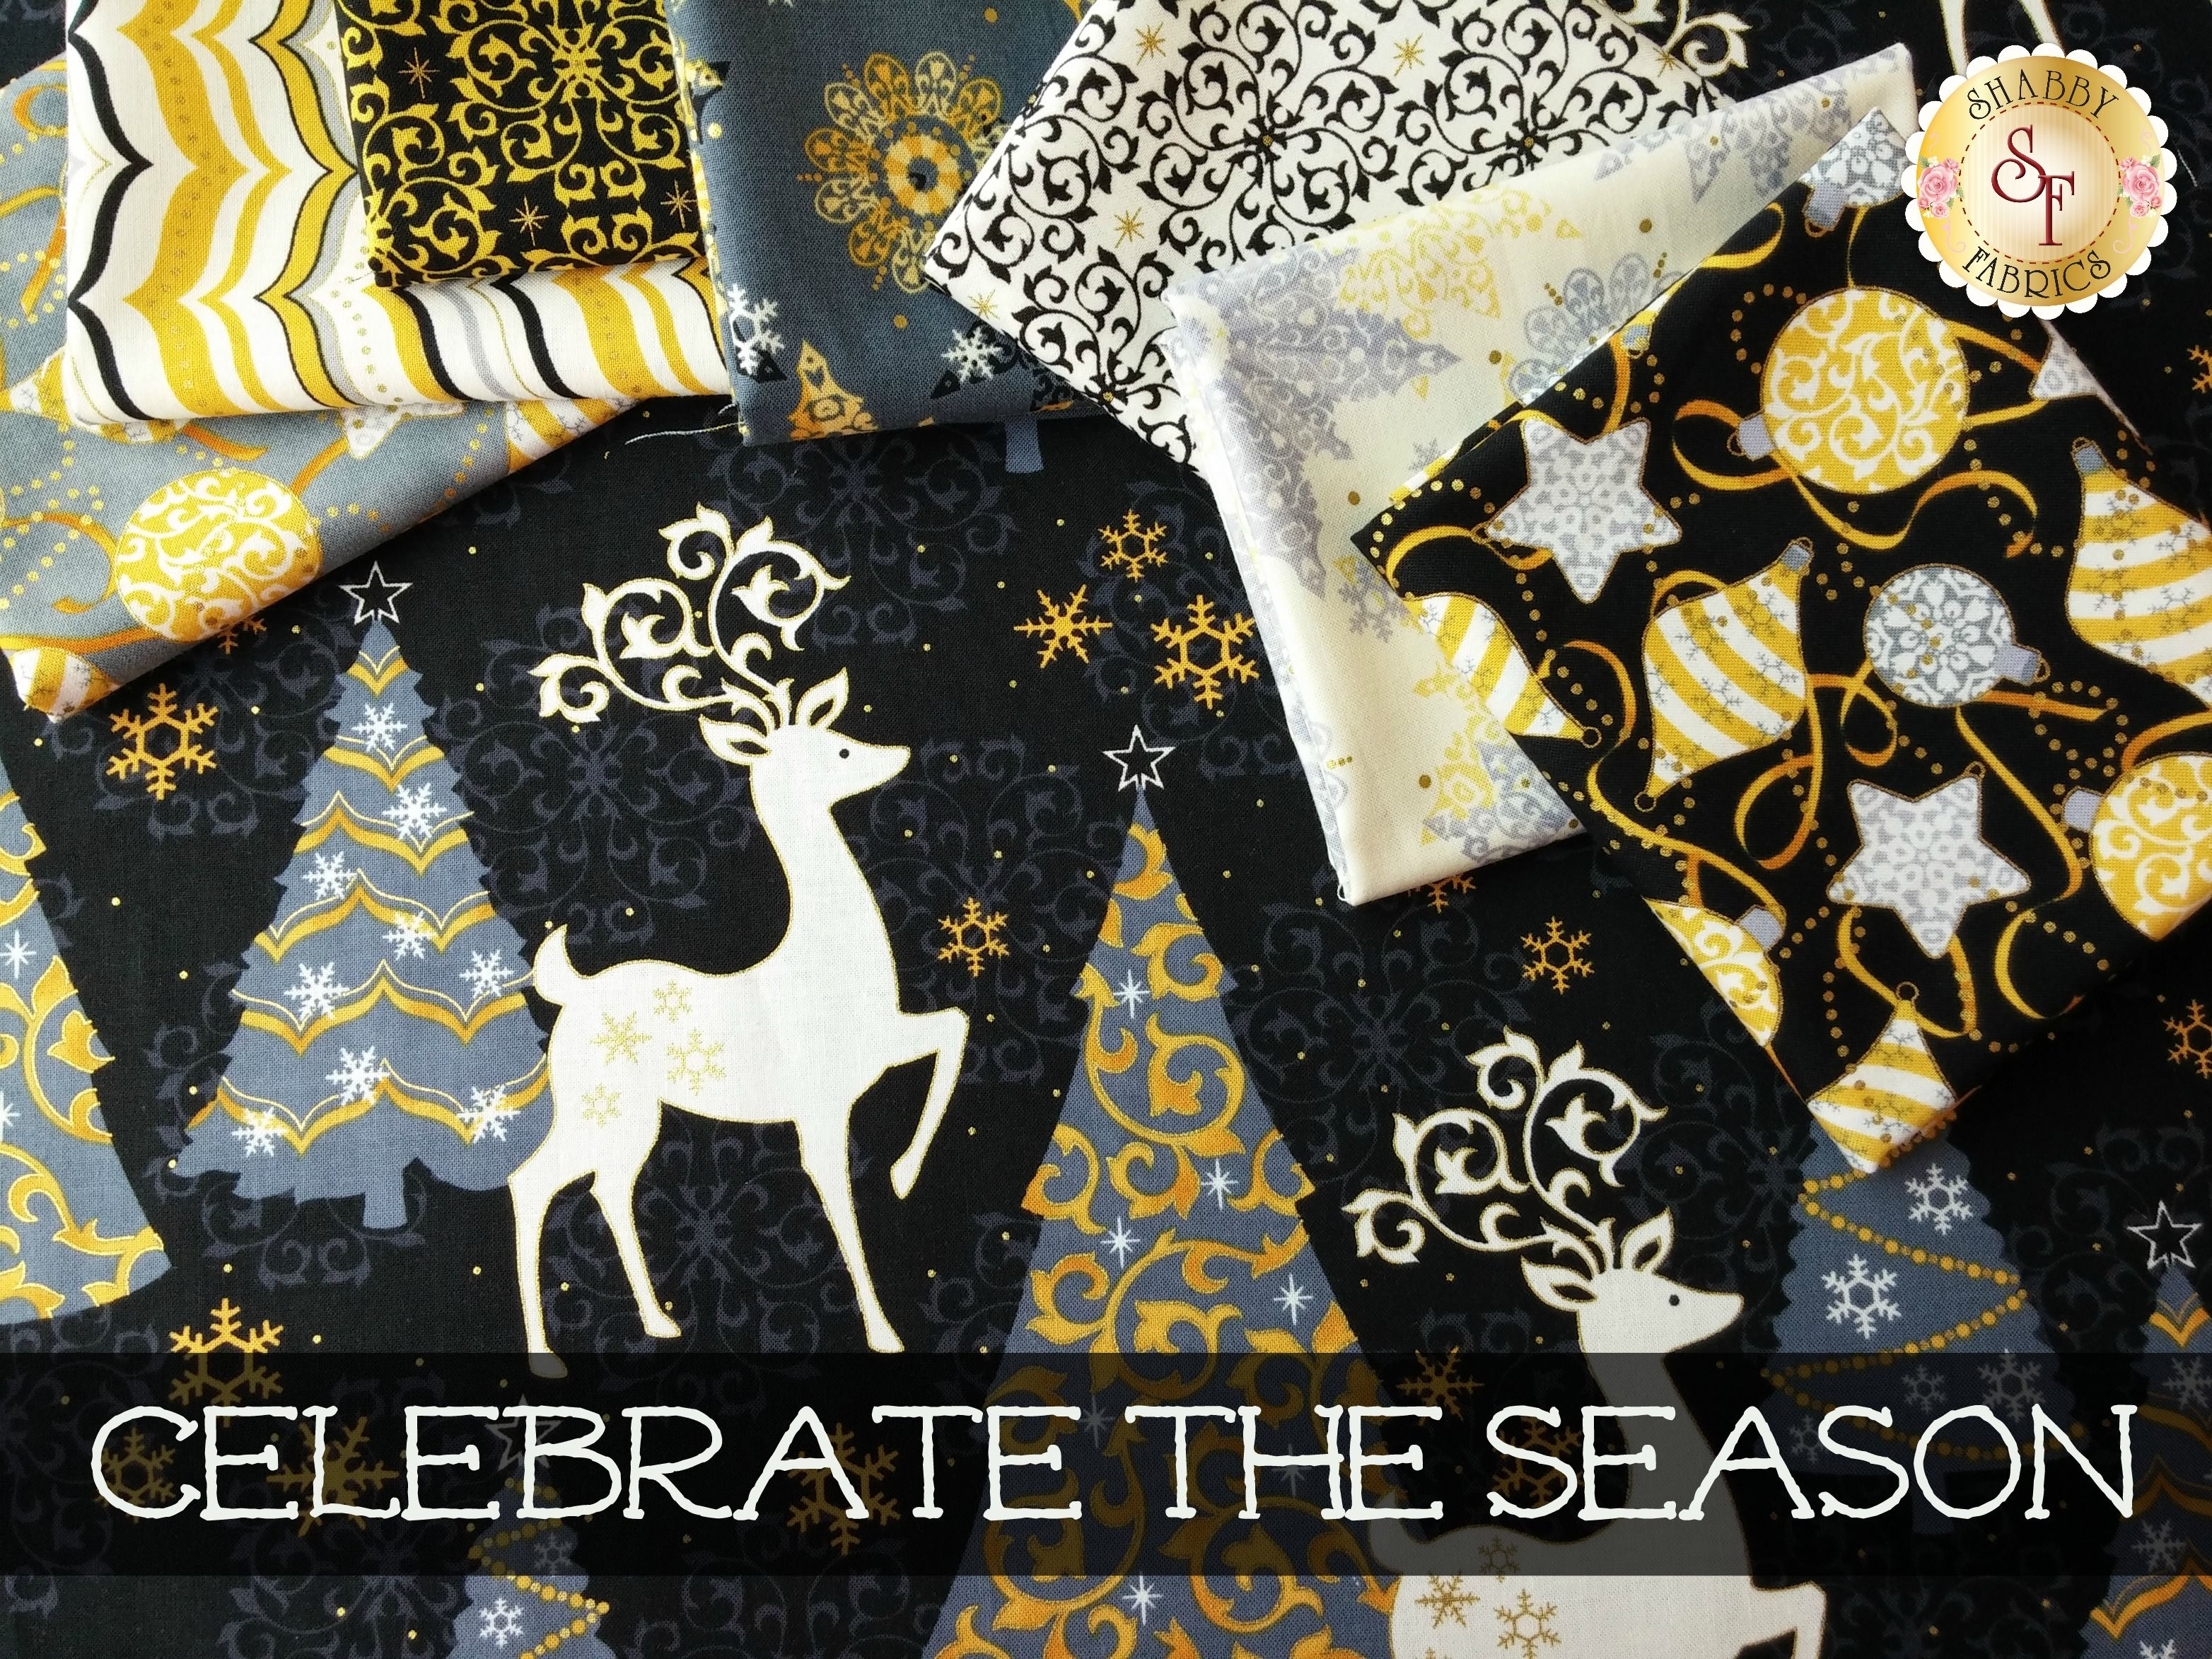 Celebrate The Season by Studio 8 for Quilting Treasures | Quilting ... : studio 8 quilting treasures - Adamdwight.com